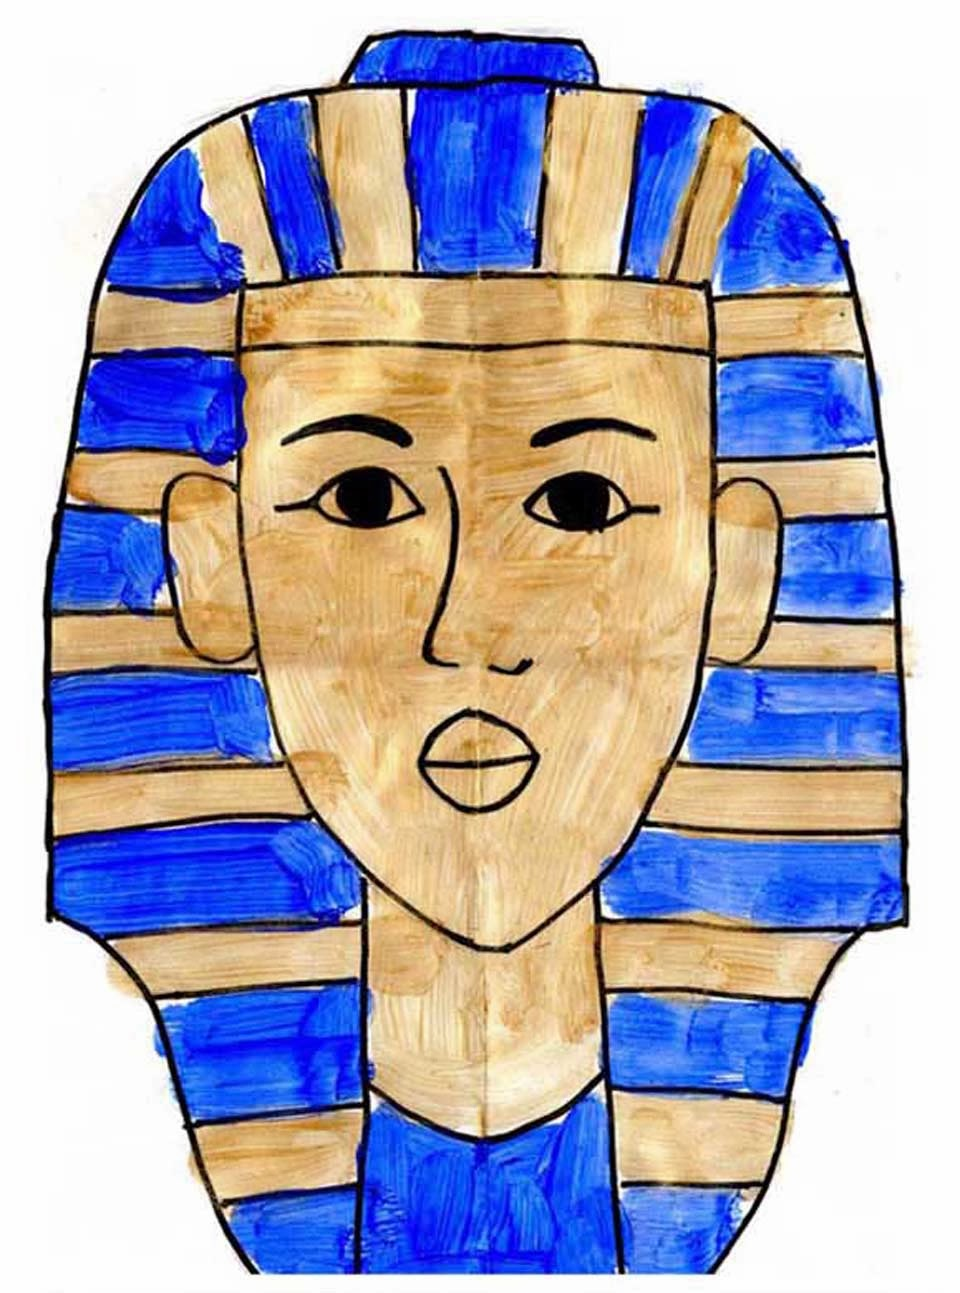 Archaeological tagged  Africa  Page     Period Paper Cheap and Cheerful   WordPress com     Painting of Tutankhamun s death mask on papyrus paper  Cairo  Egypt    Stock Photo